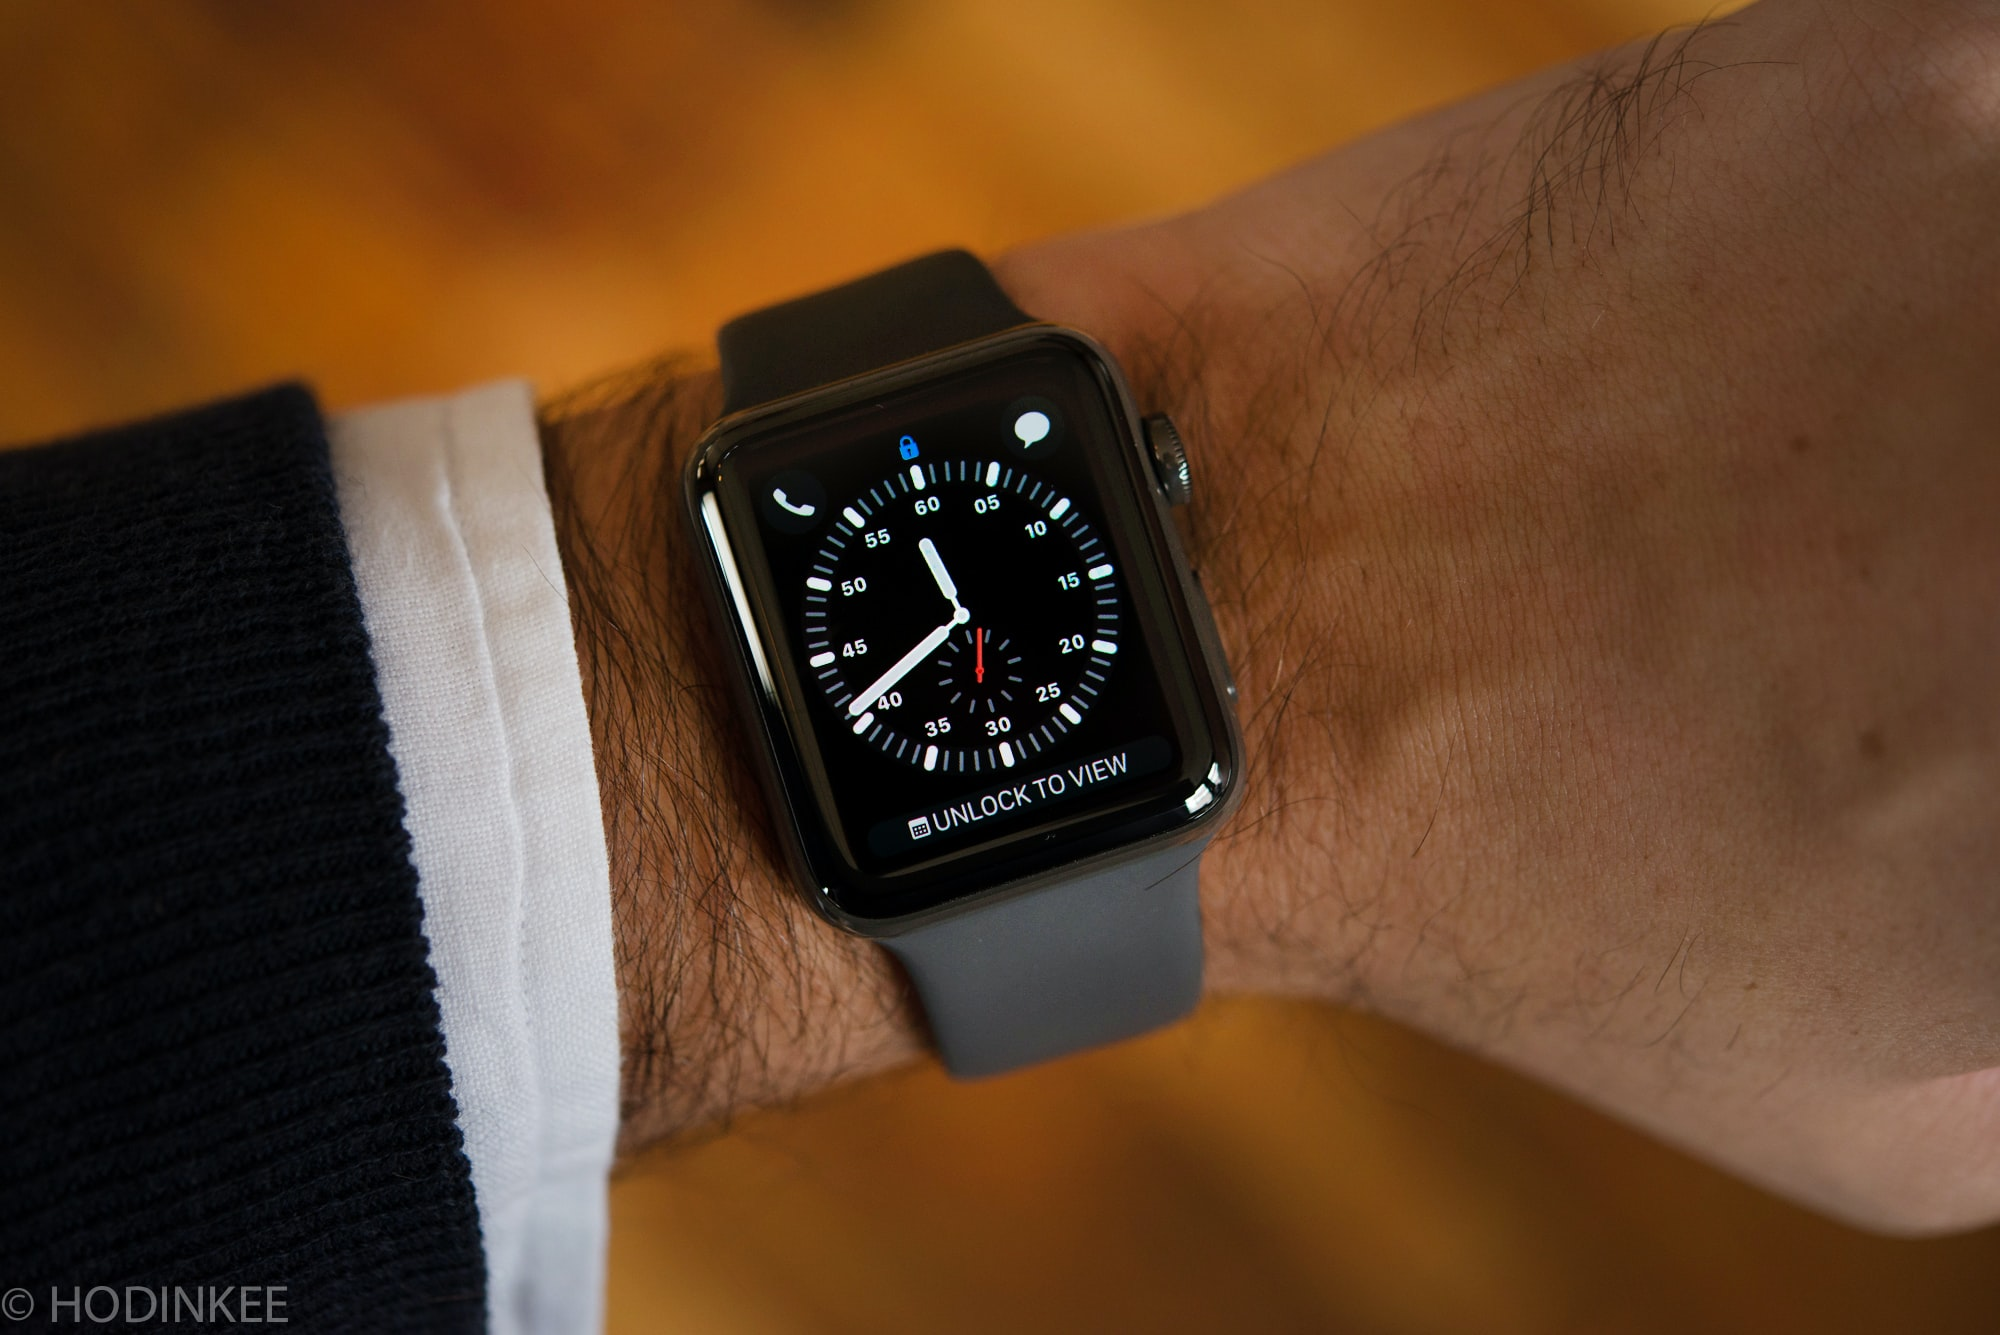 A Week On The Wrist: The Apple Watch Series 3 Edition A Week On The Wrist: The Apple Watch Series 3 Edition AppleWatchSeries3Edition 19